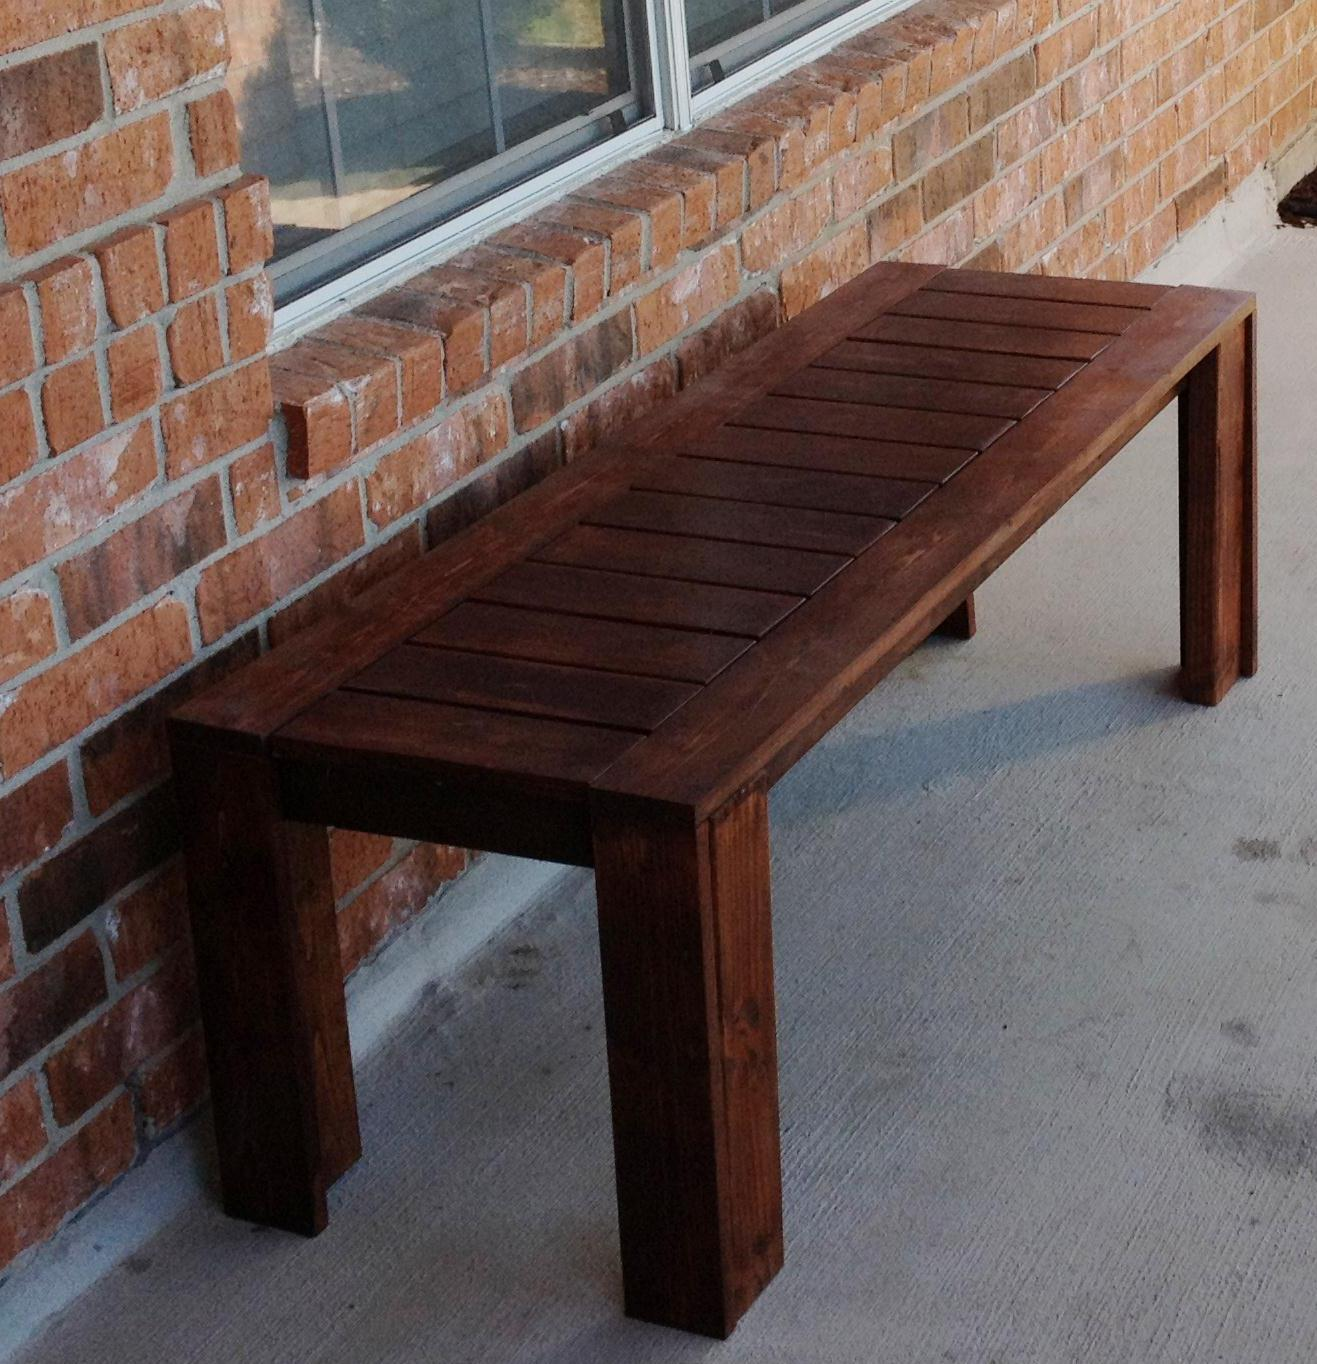 Ana White Simple Outdoor Bench Diy Projects